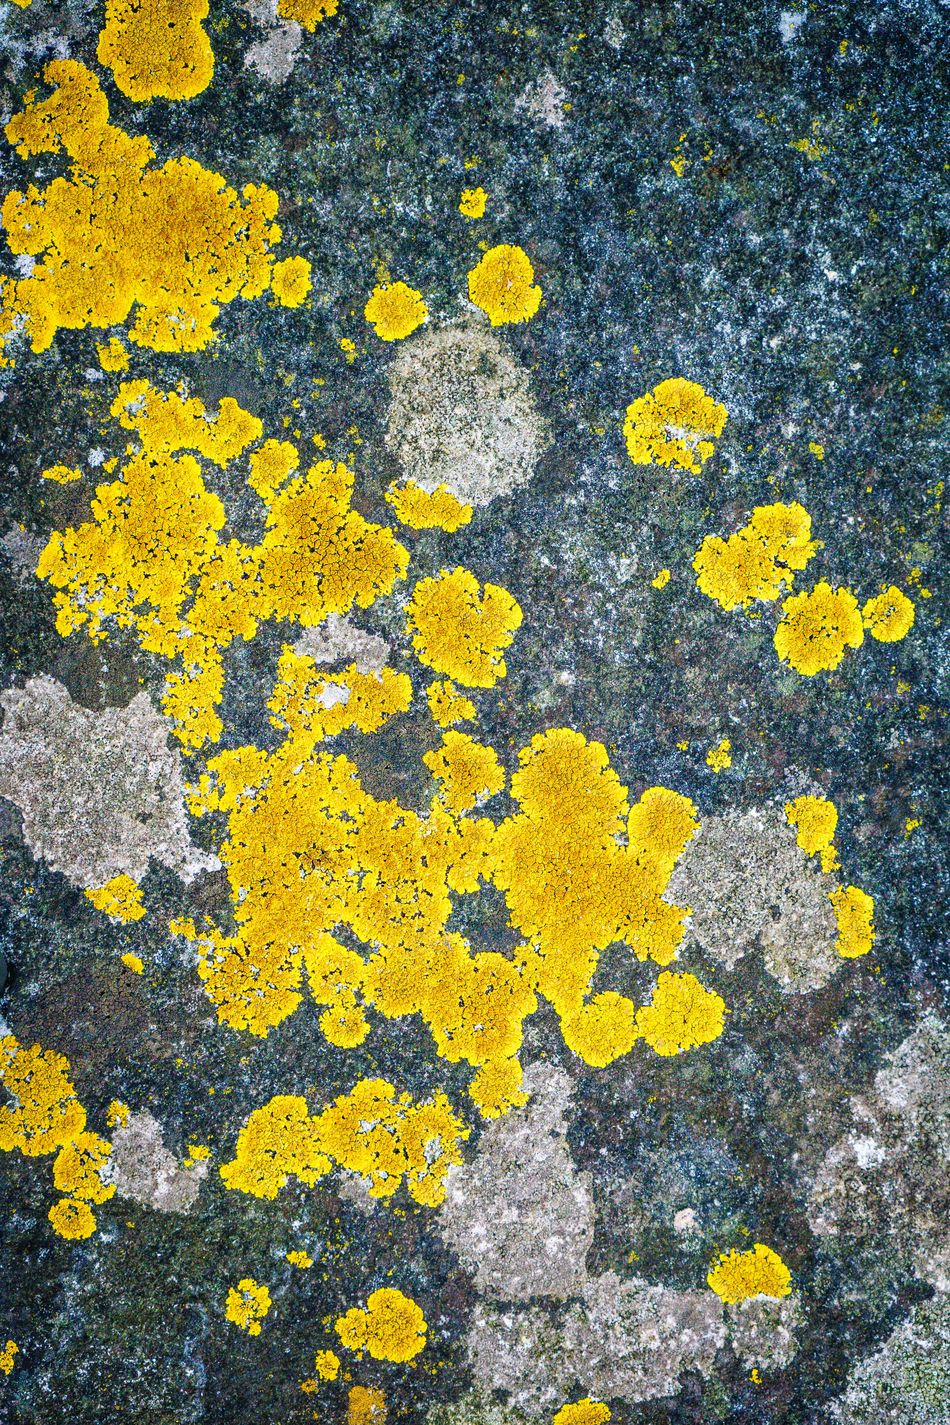 Abstract Abstract Nature Abstract Photography Asphalt Close-up Day High Angle View Moss Moss & Lichen No People Outdoors Pattern Patterns & Textures Patterns In Nature Road Textured  Yellow